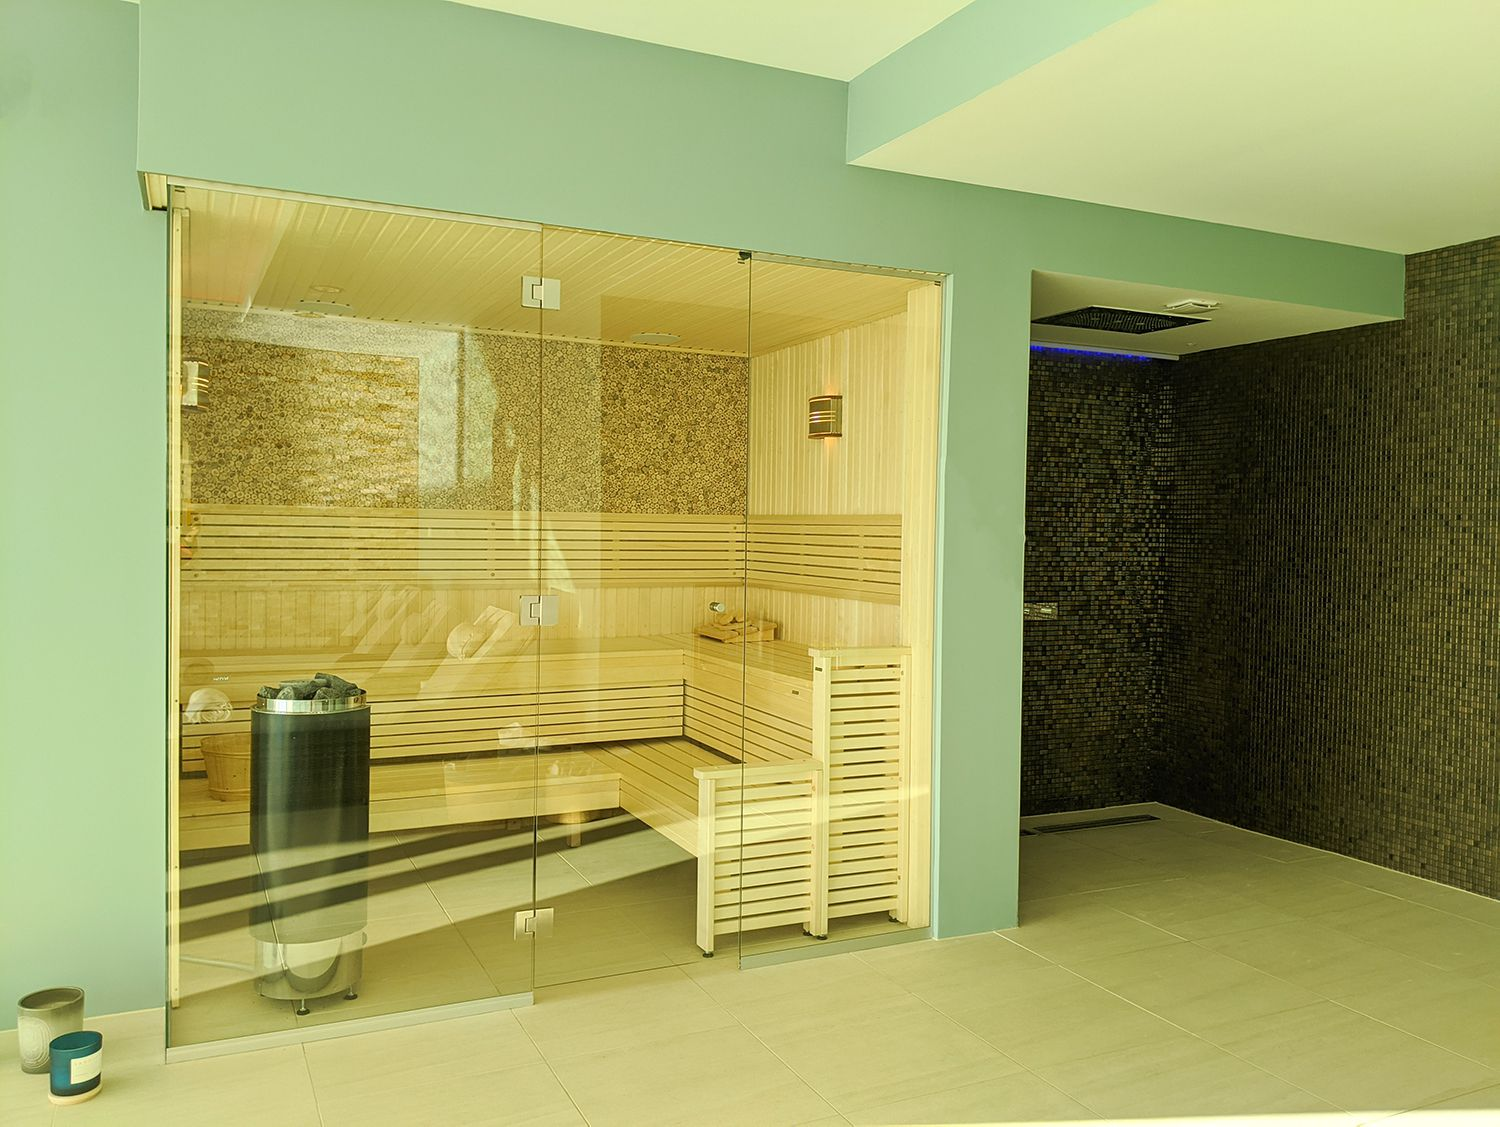 A photo of the new sauna and open shower area.